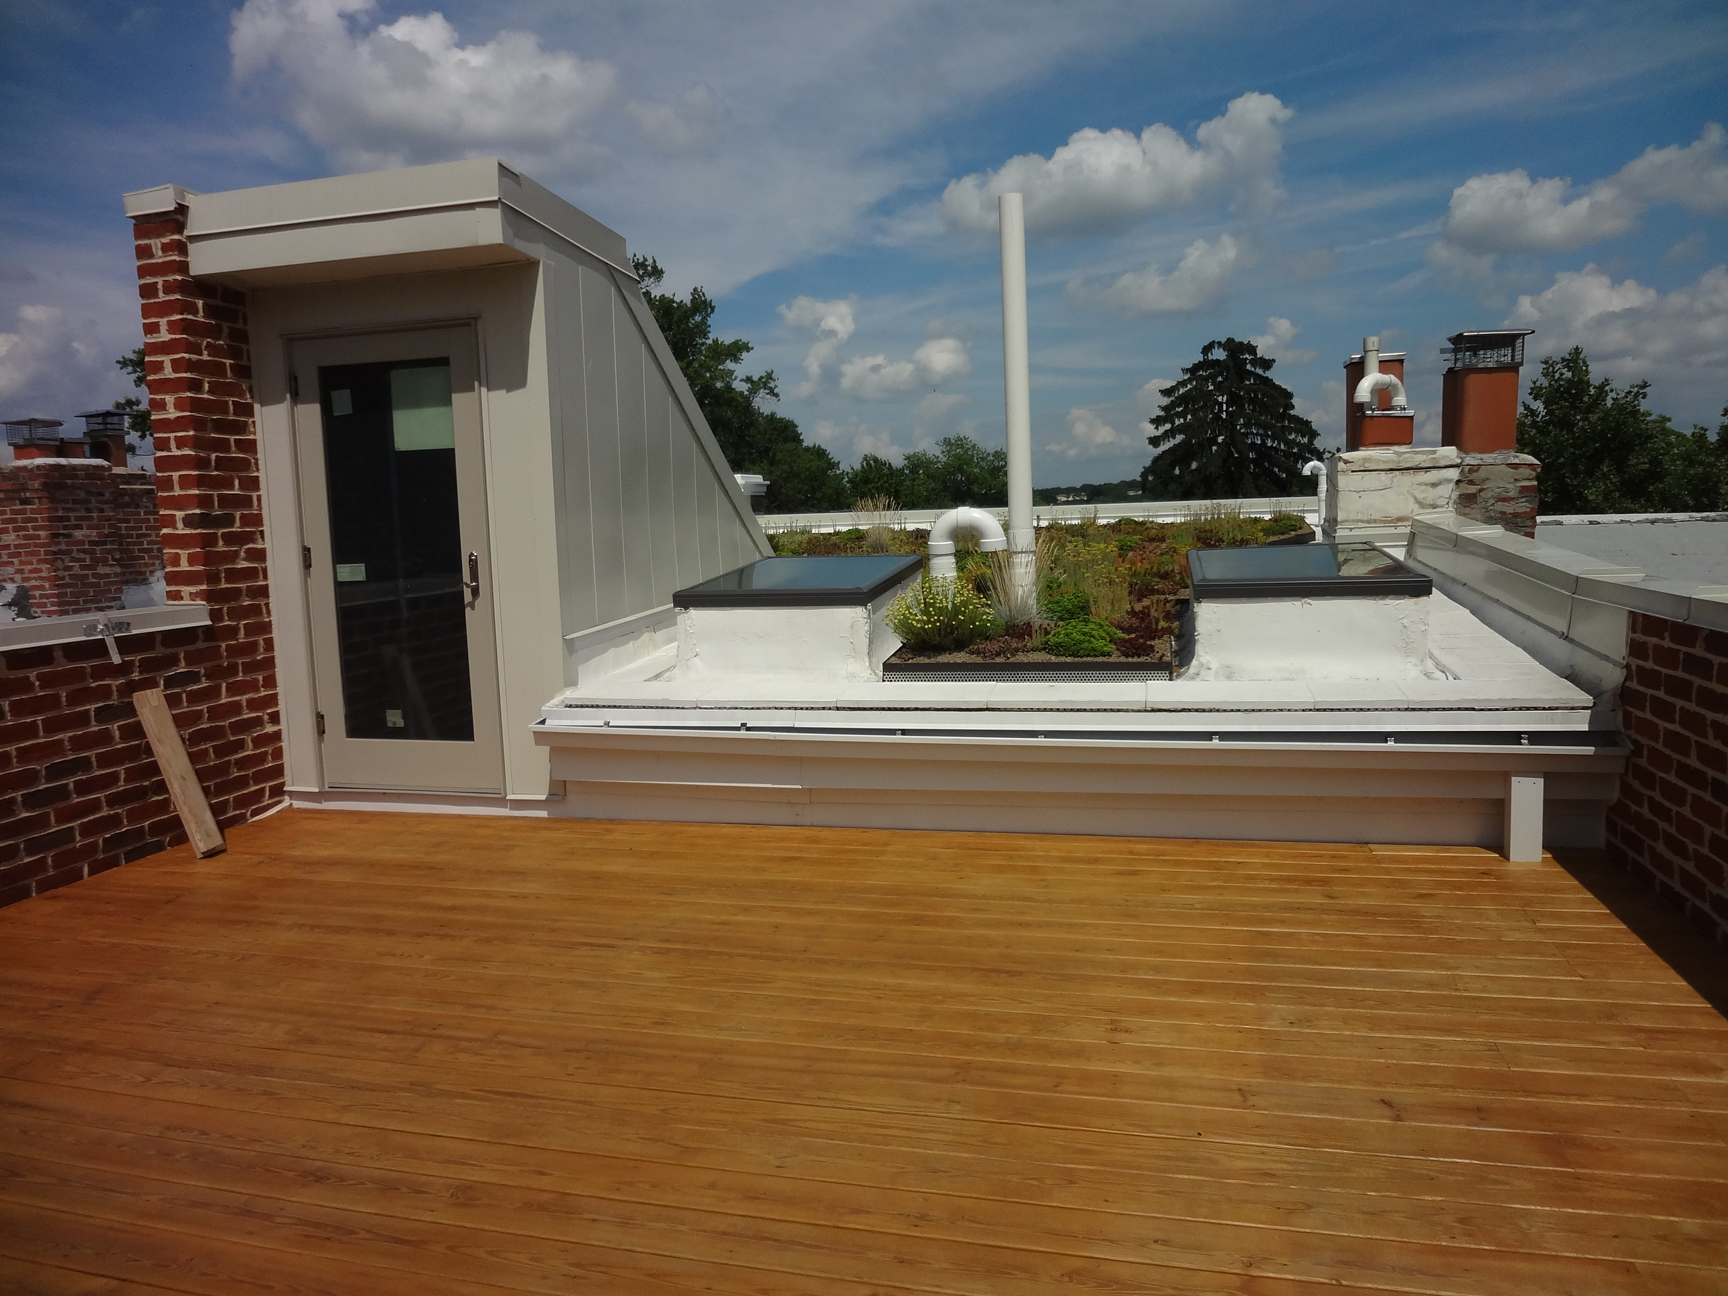 How to build a rooftop patio how to build a rooftop deck Home plans with rooftop deck